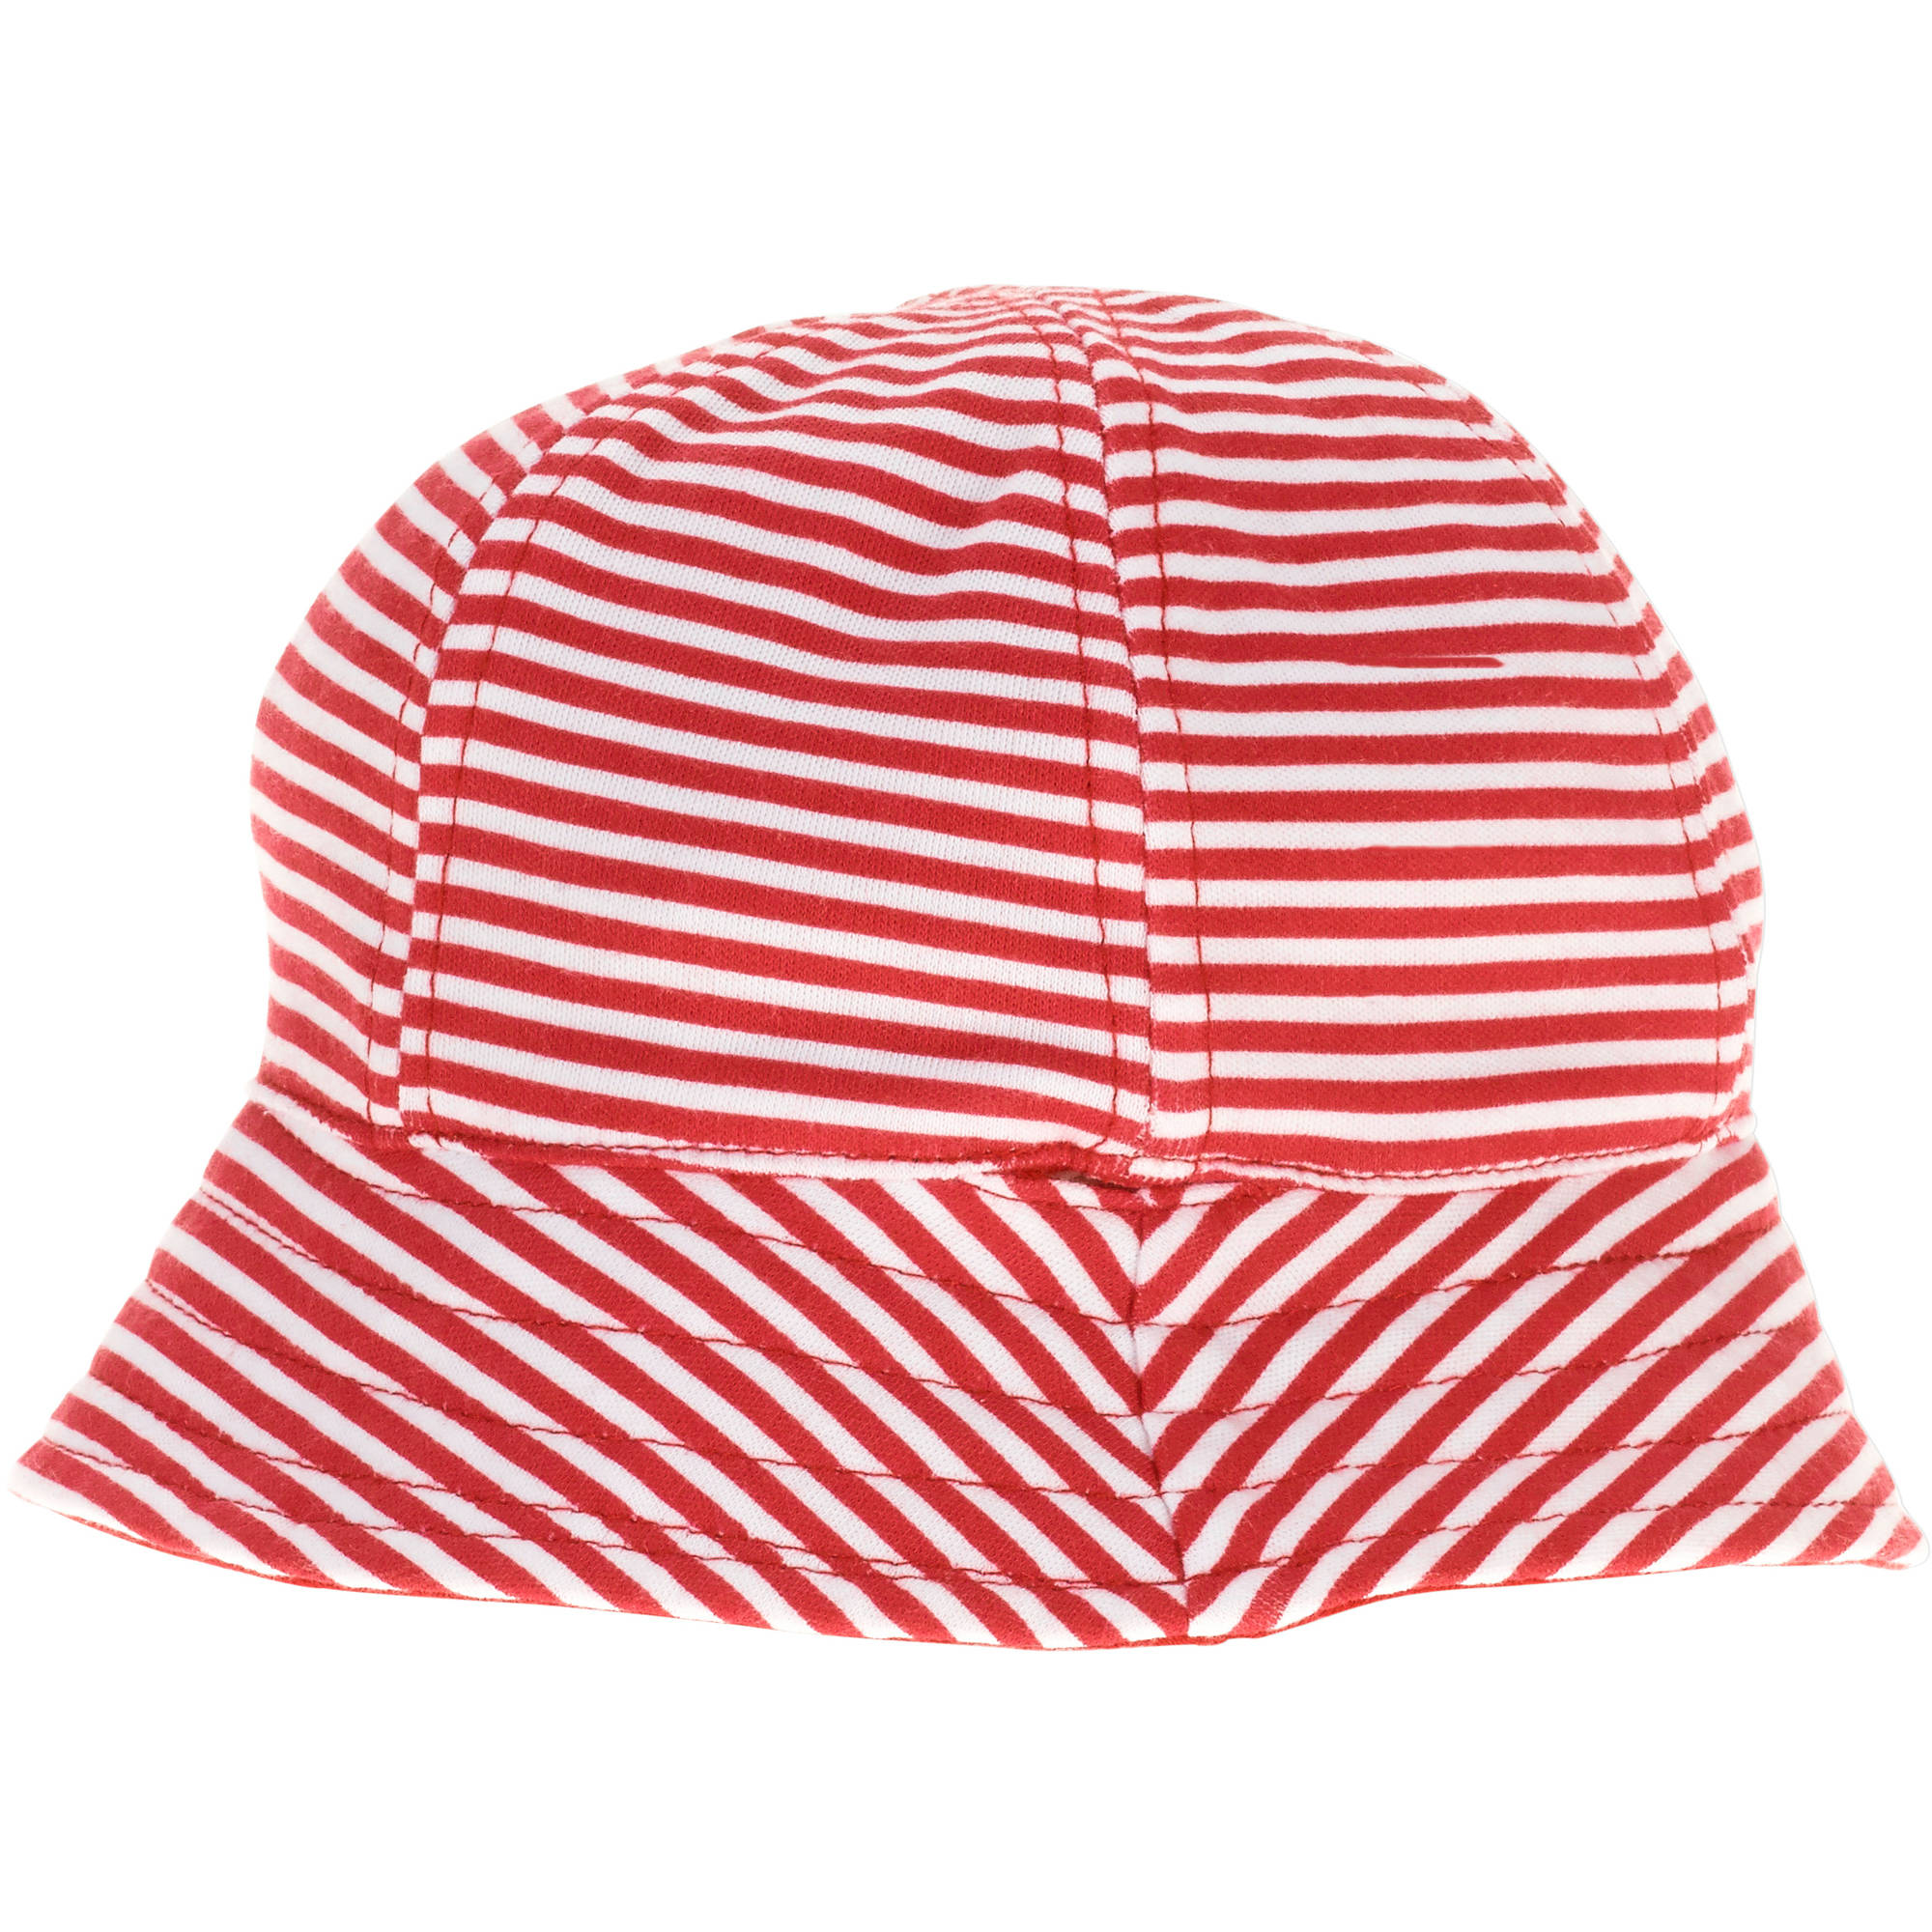 Infant Sun Hat Red Stripe Solid Design Reversible with Bow Upf 50+   6-12M